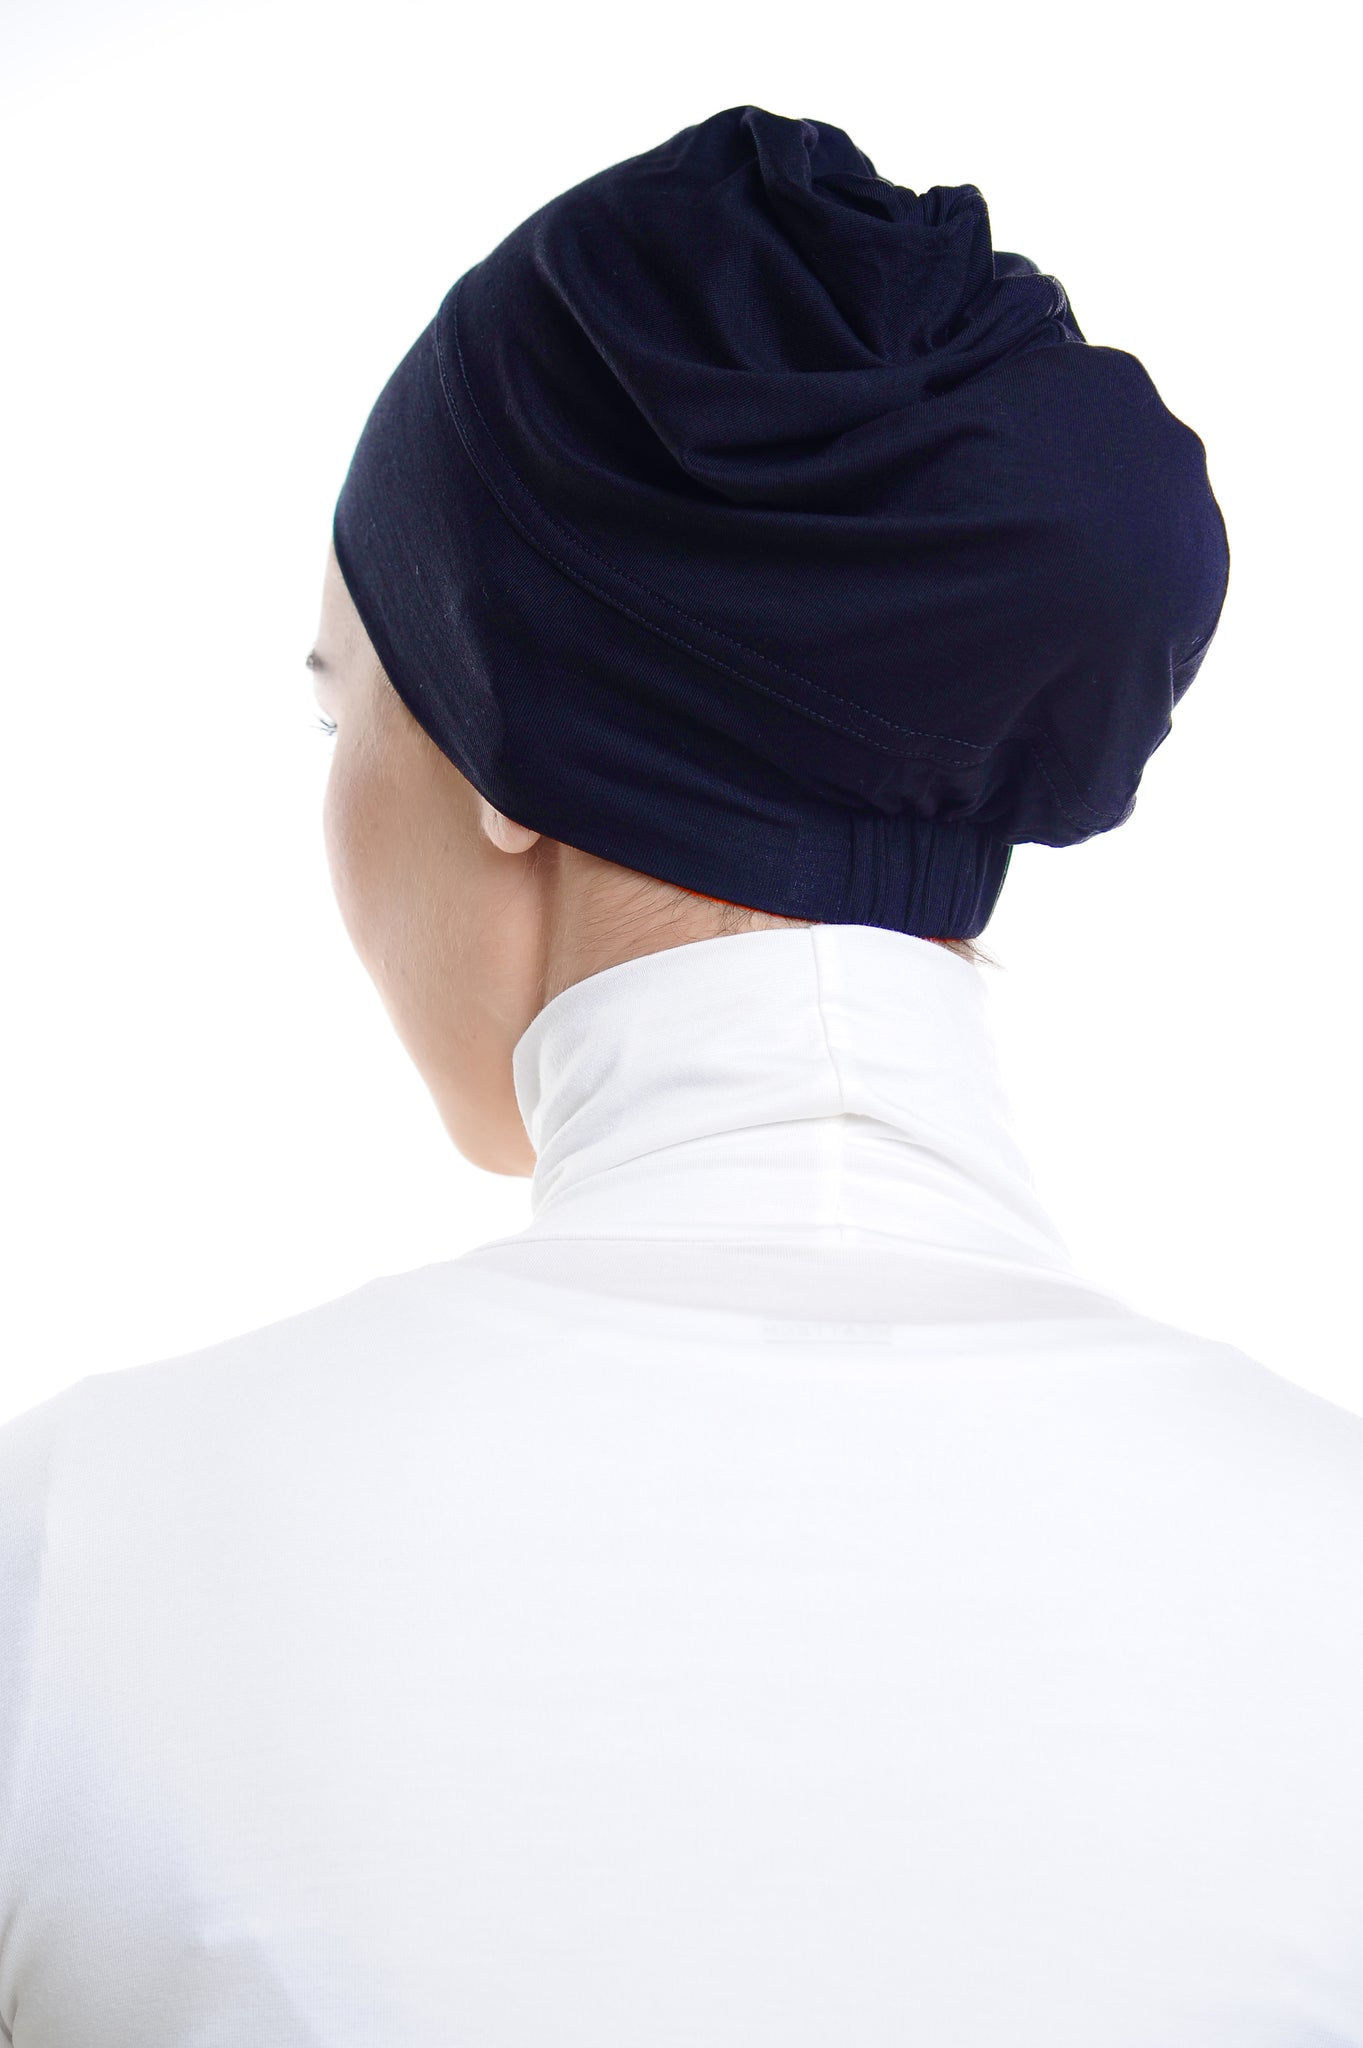 Snow Cap in Patriot Blue without ear loop